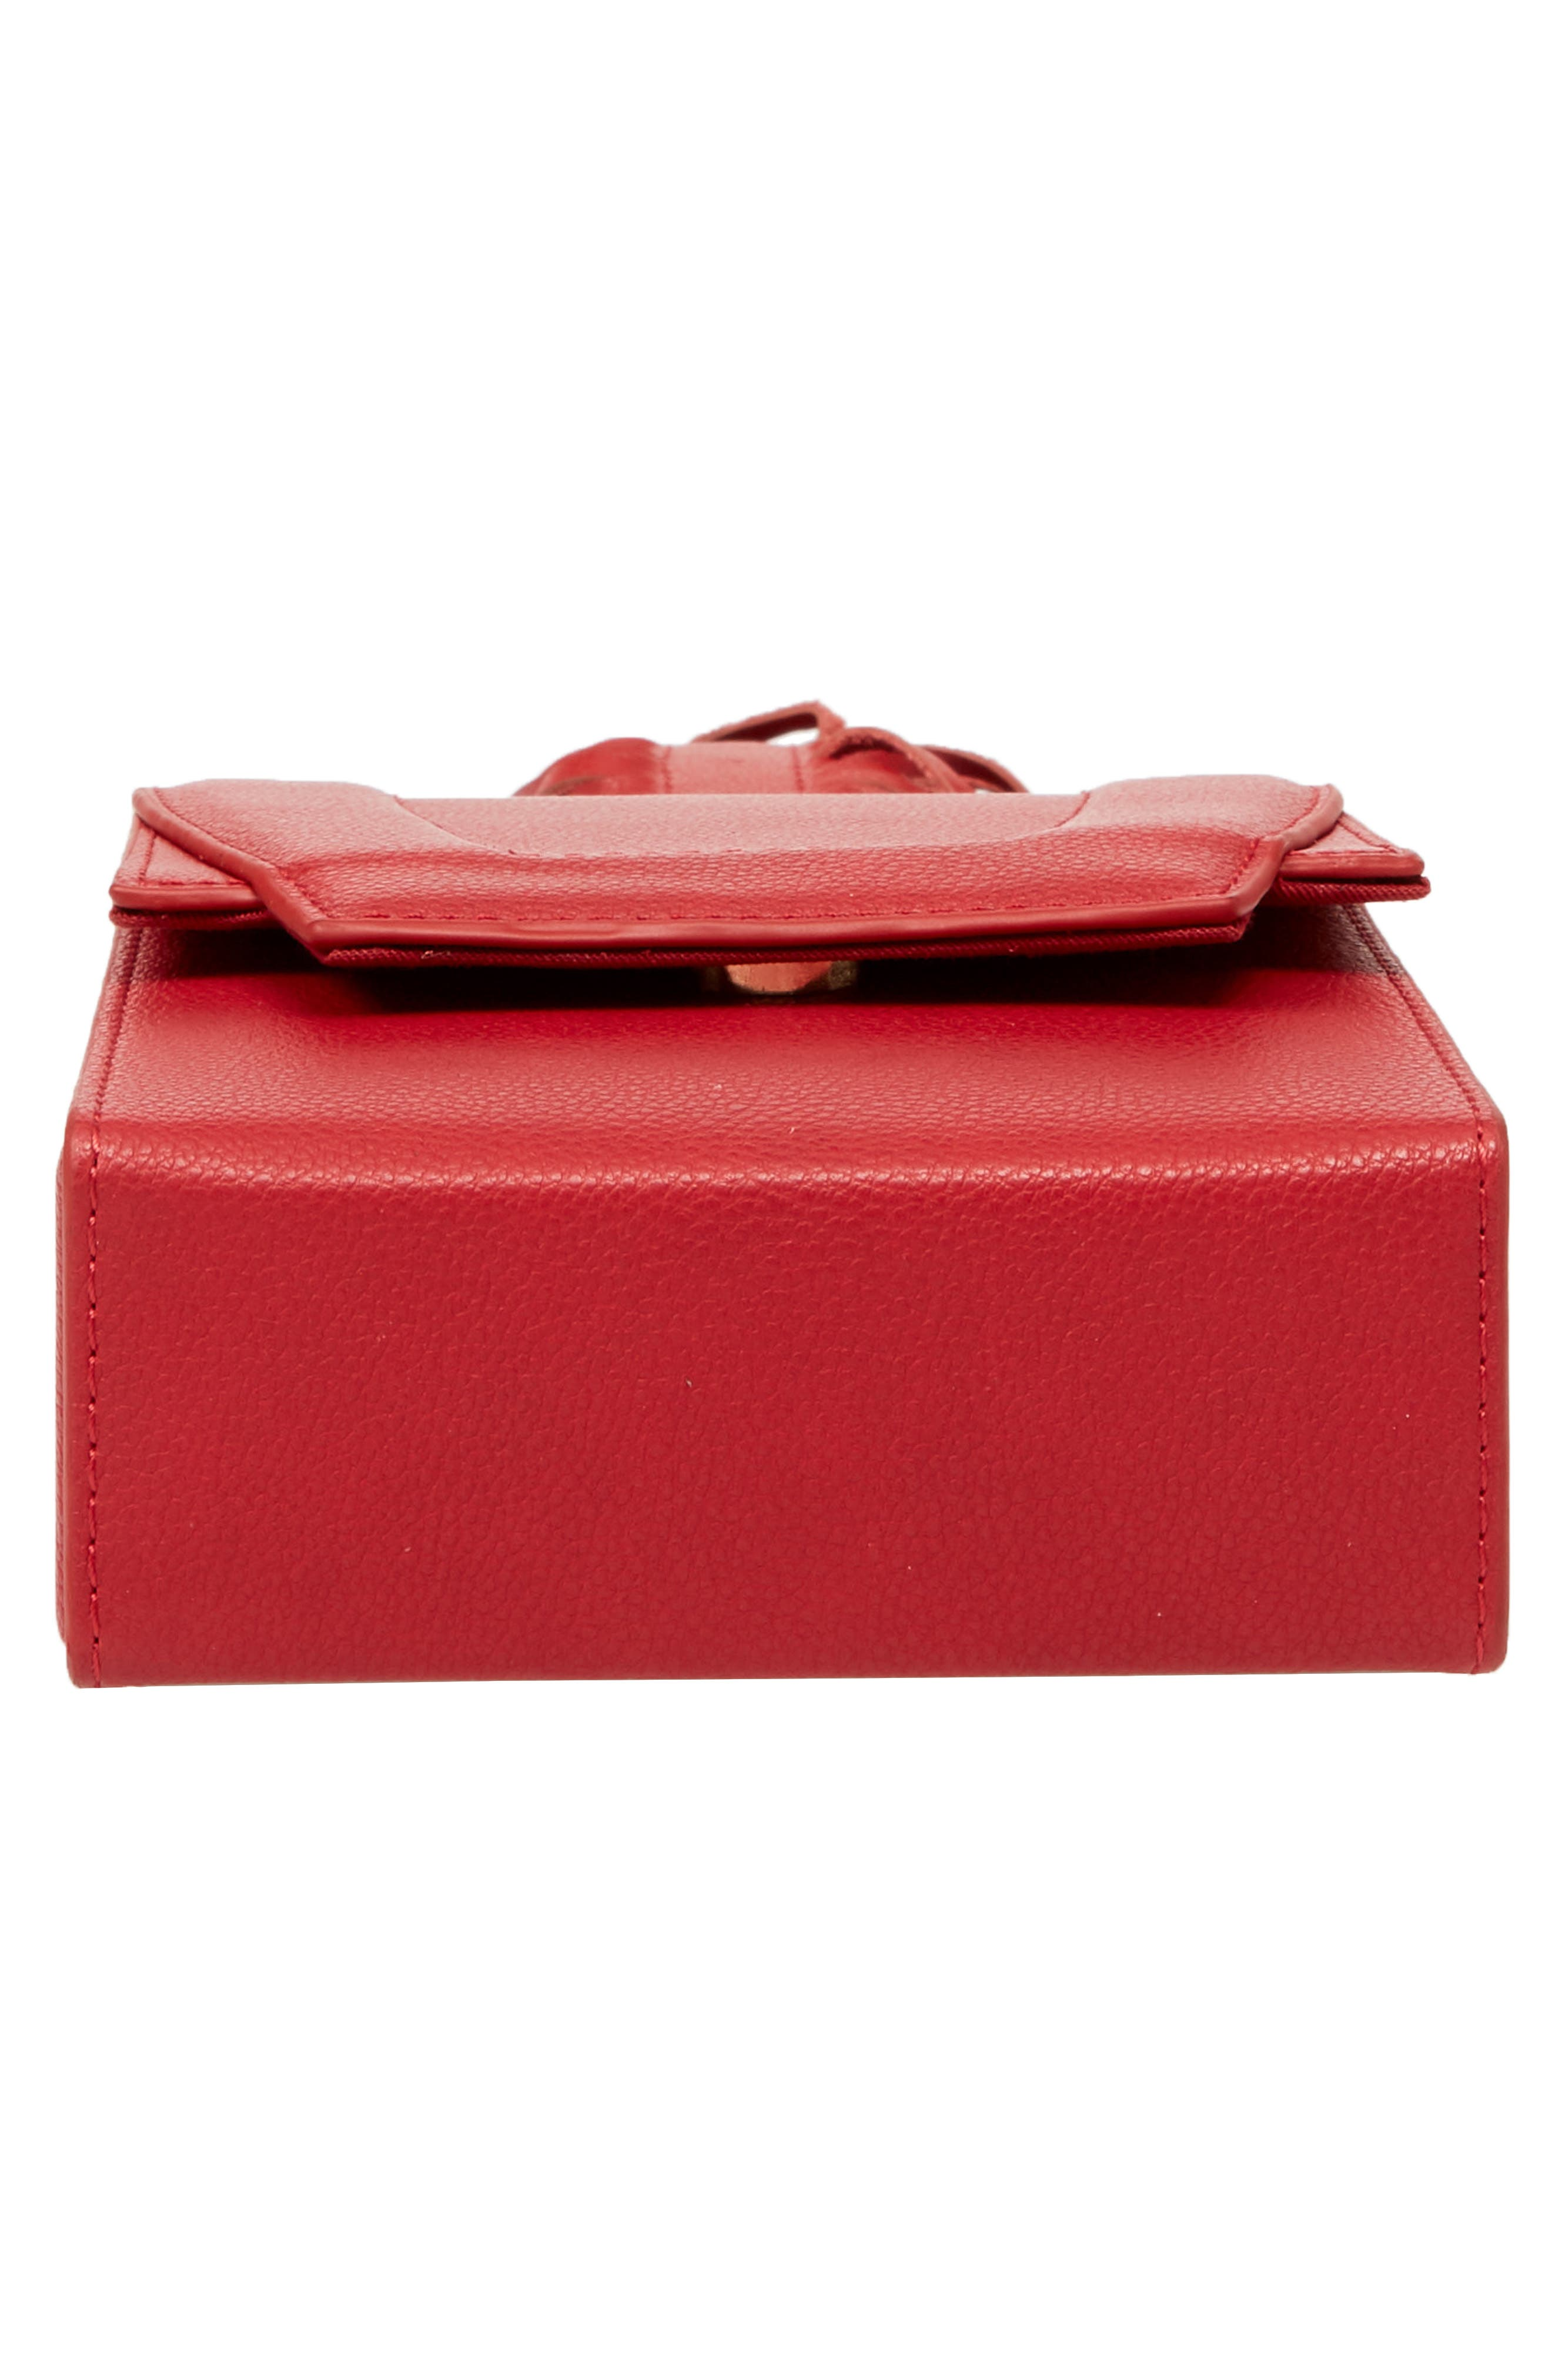 Alivia Leather Clutch,                             Alternate thumbnail 6, color,                             600